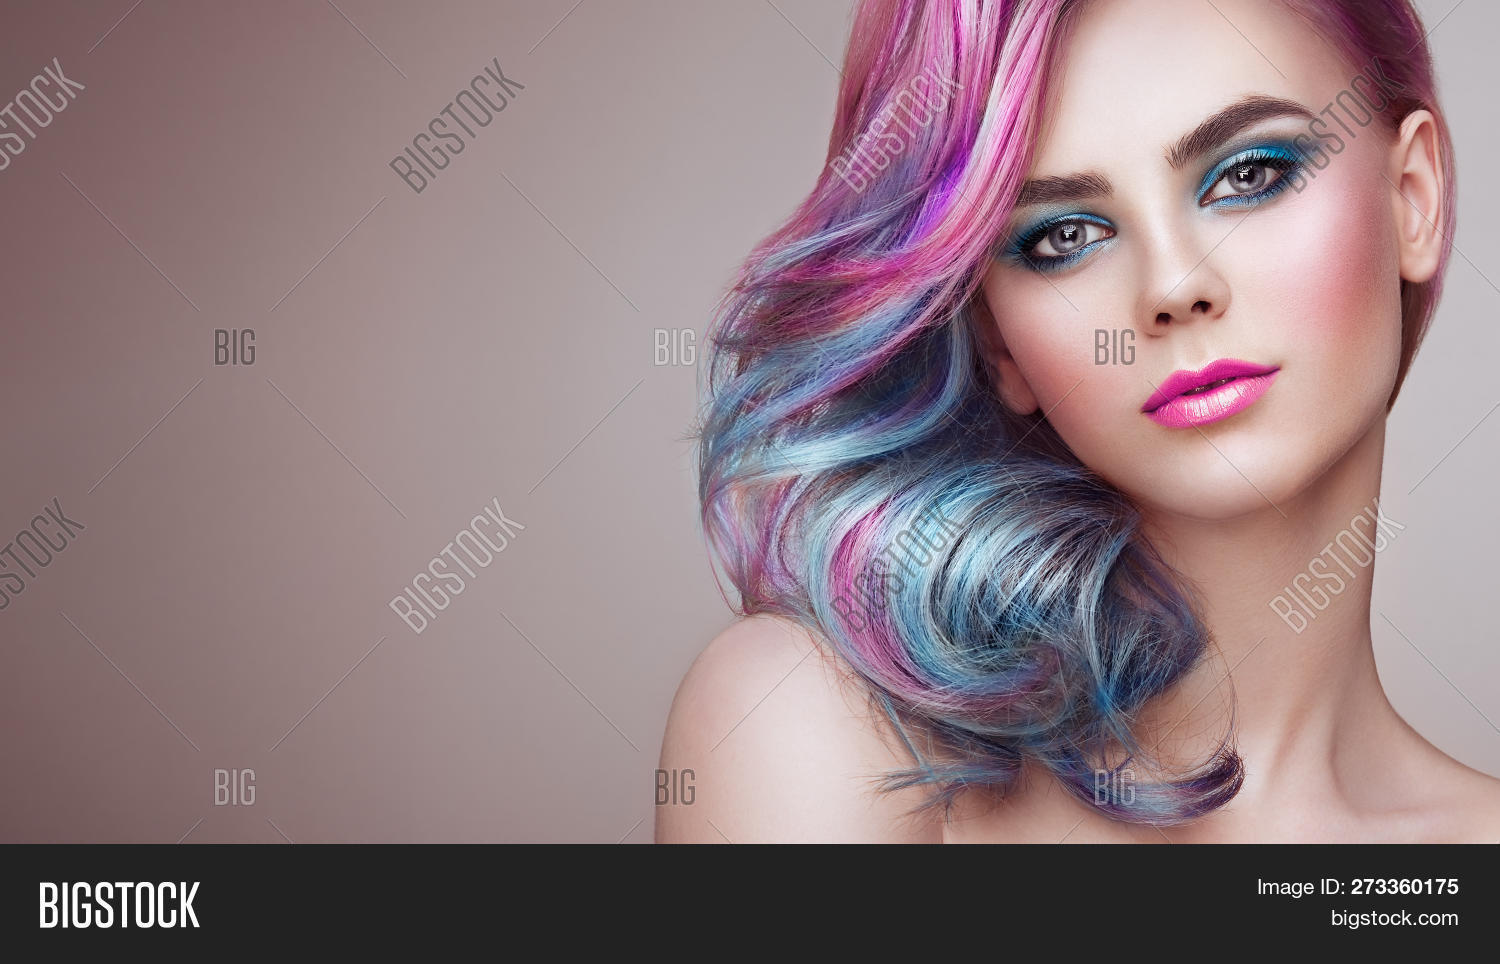 beautiful,beauty,blond,blonde,care,caucasian,color,coloration,colorful,coloring,cosmetic,dandruff,dyed,elegance,elegant,eyes,face,fashion,female,girl,glamour,hair,haircut,hairdresser,hairstyle,healthy,lady,lips,lipstick,long,luxurious,magnificent,makeup,model,perming,pink,portrait,rainbow,salon,shampoo,shine,style,toned,vogue,wellness,wig,woman,womanly,young